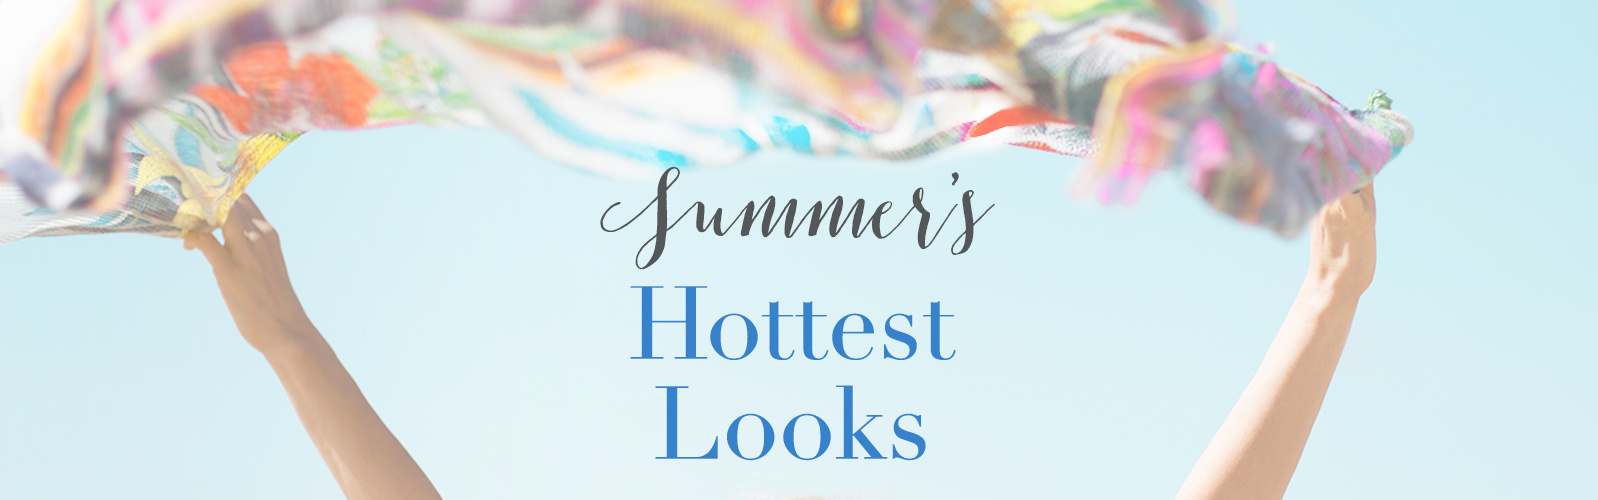 Summer's Hottest Looks